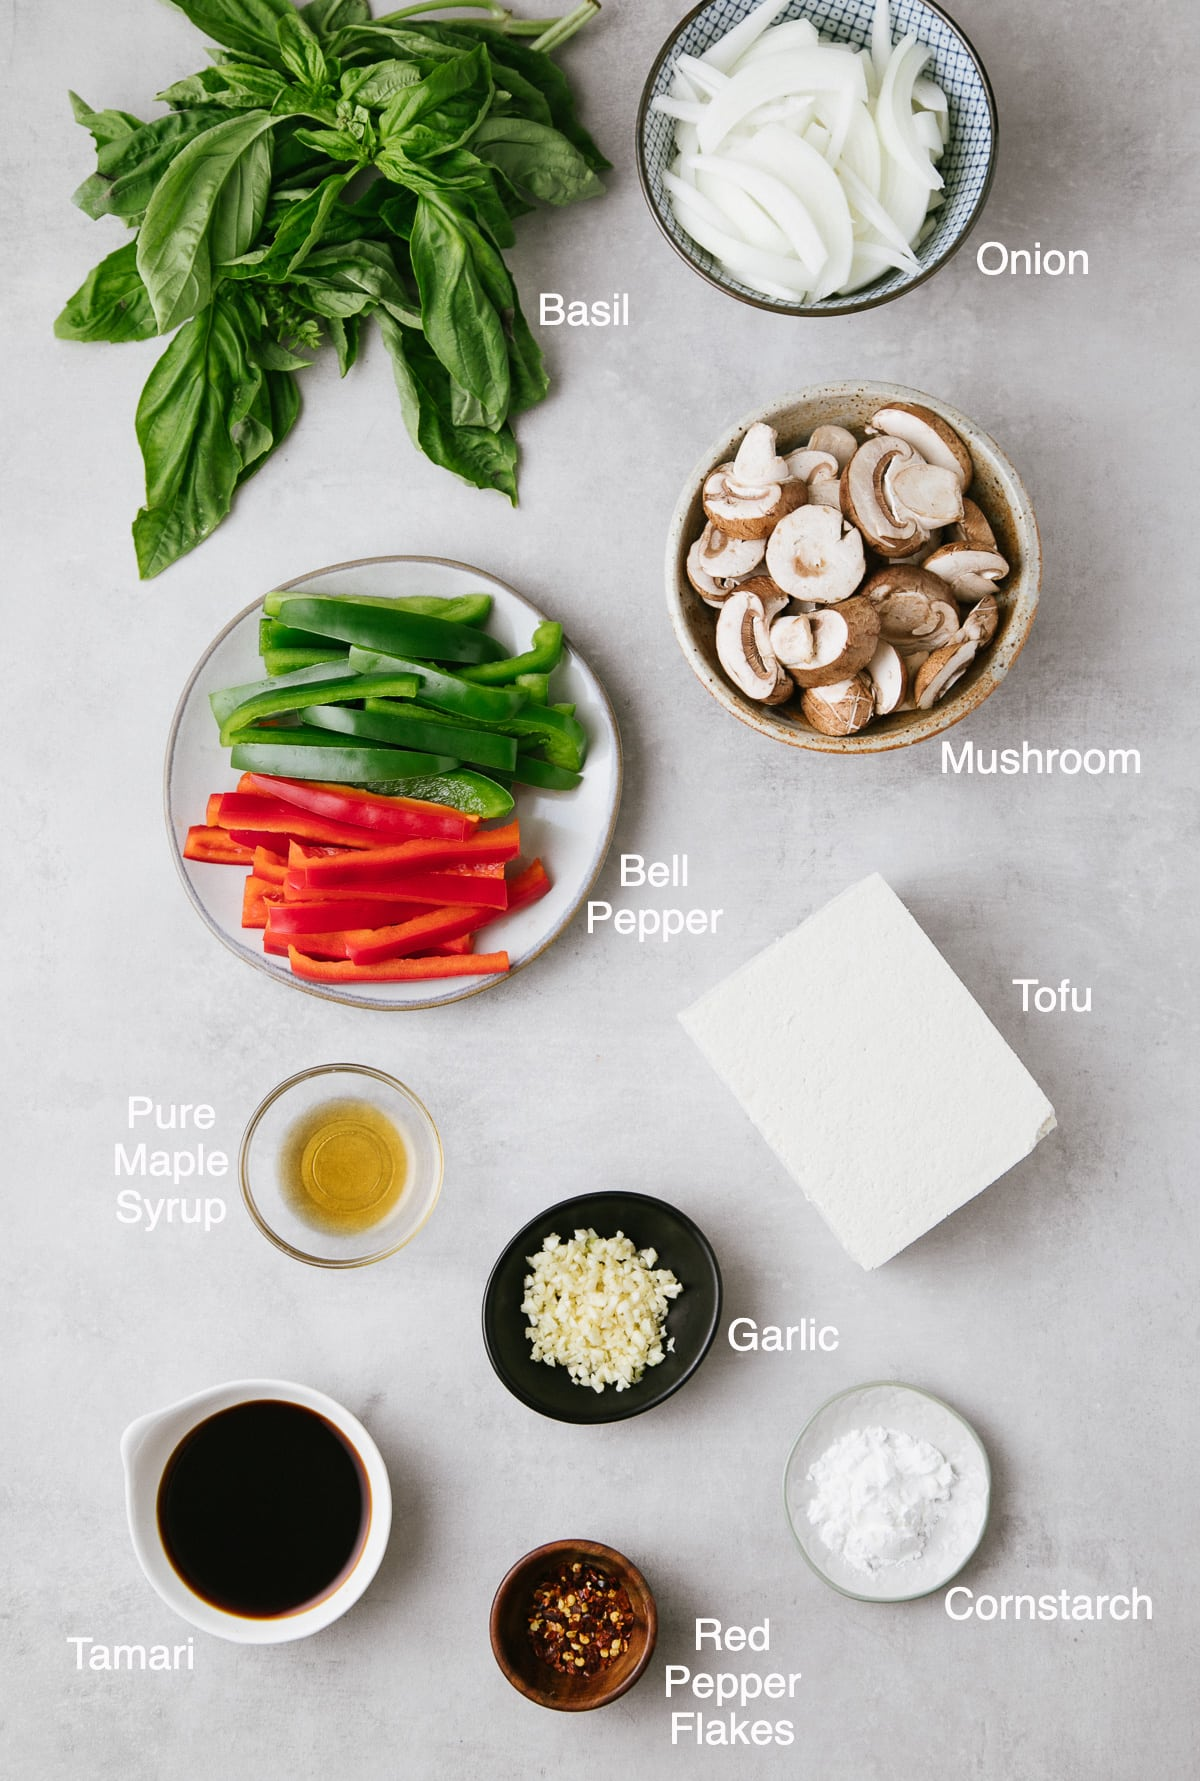 top down view of ingredients used to make basil stir fry with tofu and veggies.